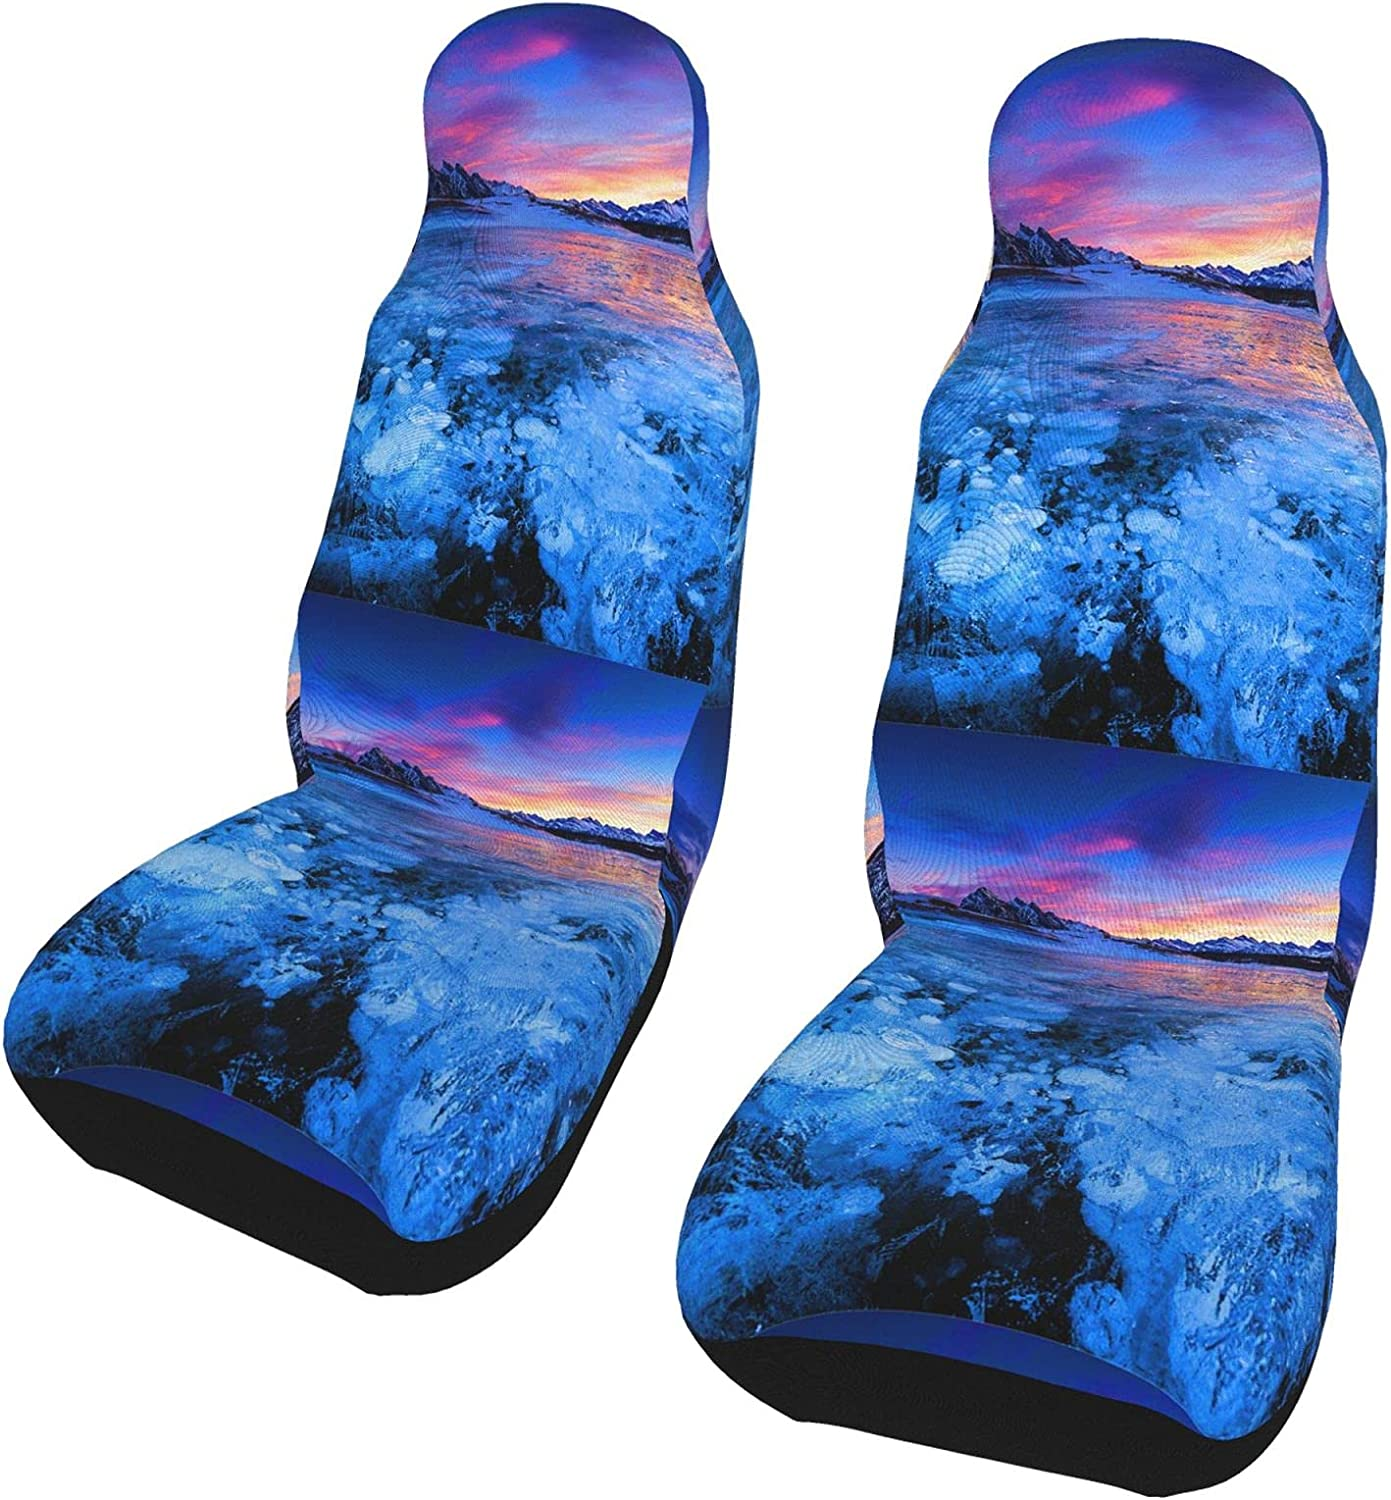 REDDATES Blue Ice Frozen Lake Minneapolis Sale SALE% OFF Mall Car Front Pro Seat Cover Seats